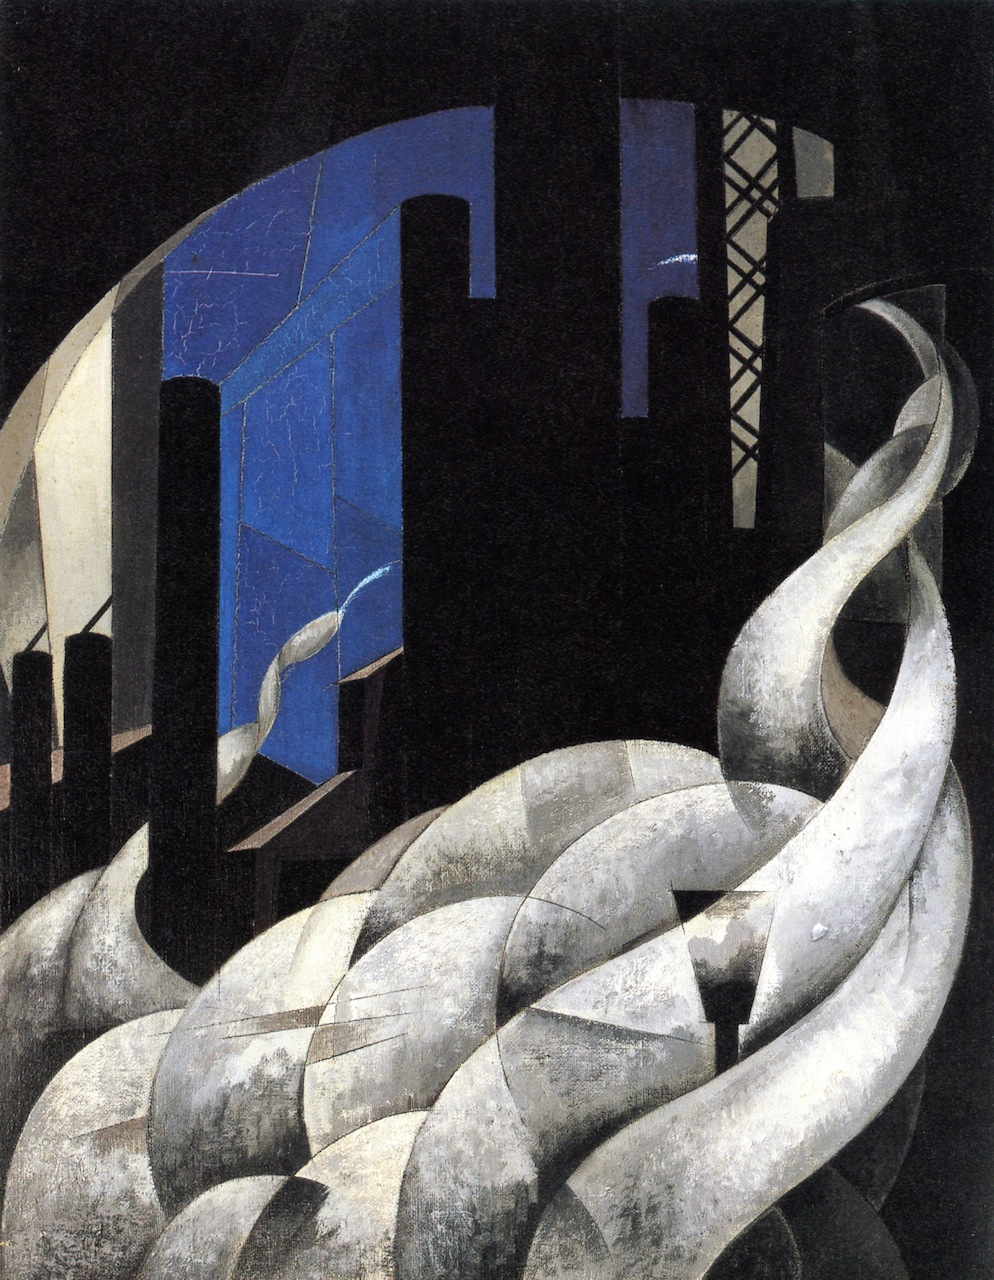 Charles Demuth, Incense of a New Church, 1921, as reproduced in Art in Time